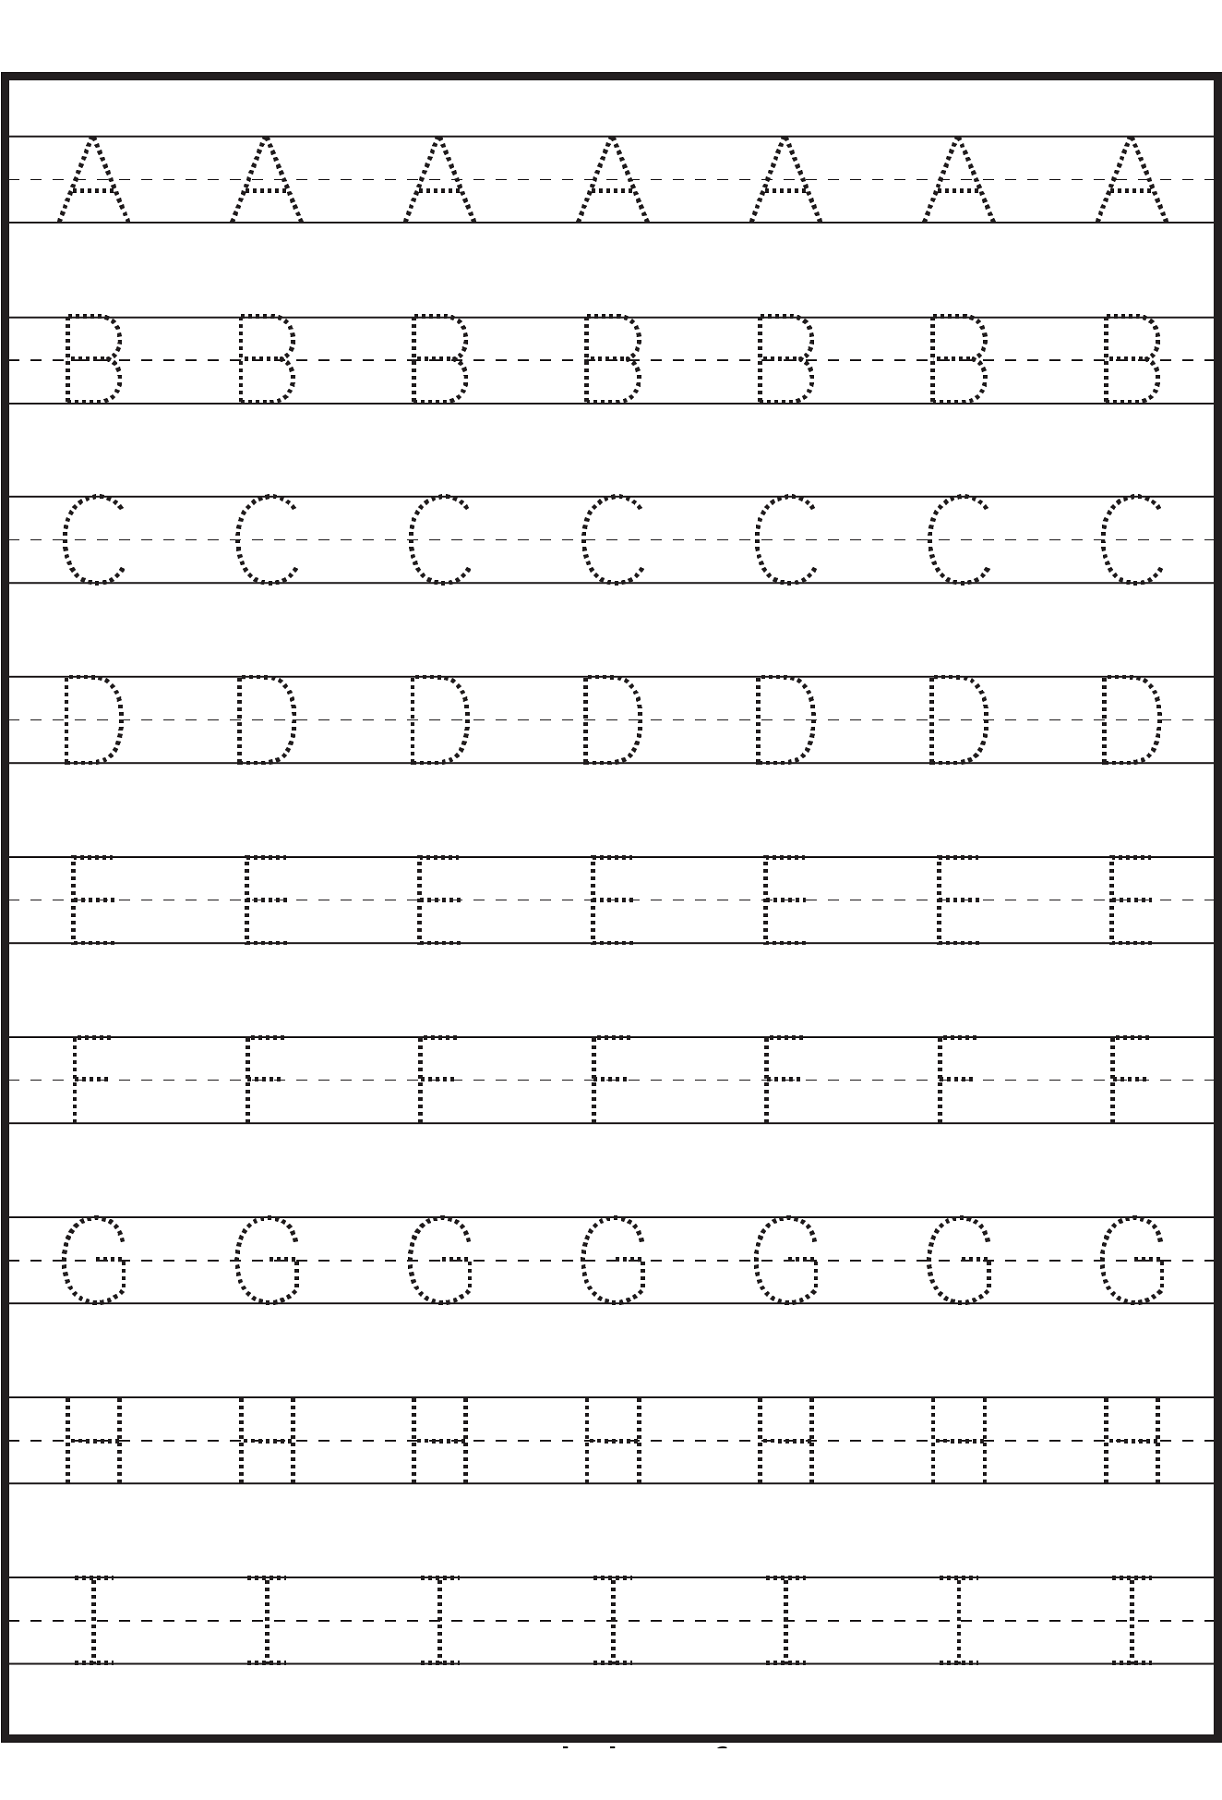 Staggering Printingrksheets Alphabet Make Your Own For throughout Letter S Worksheets Easy Peasy